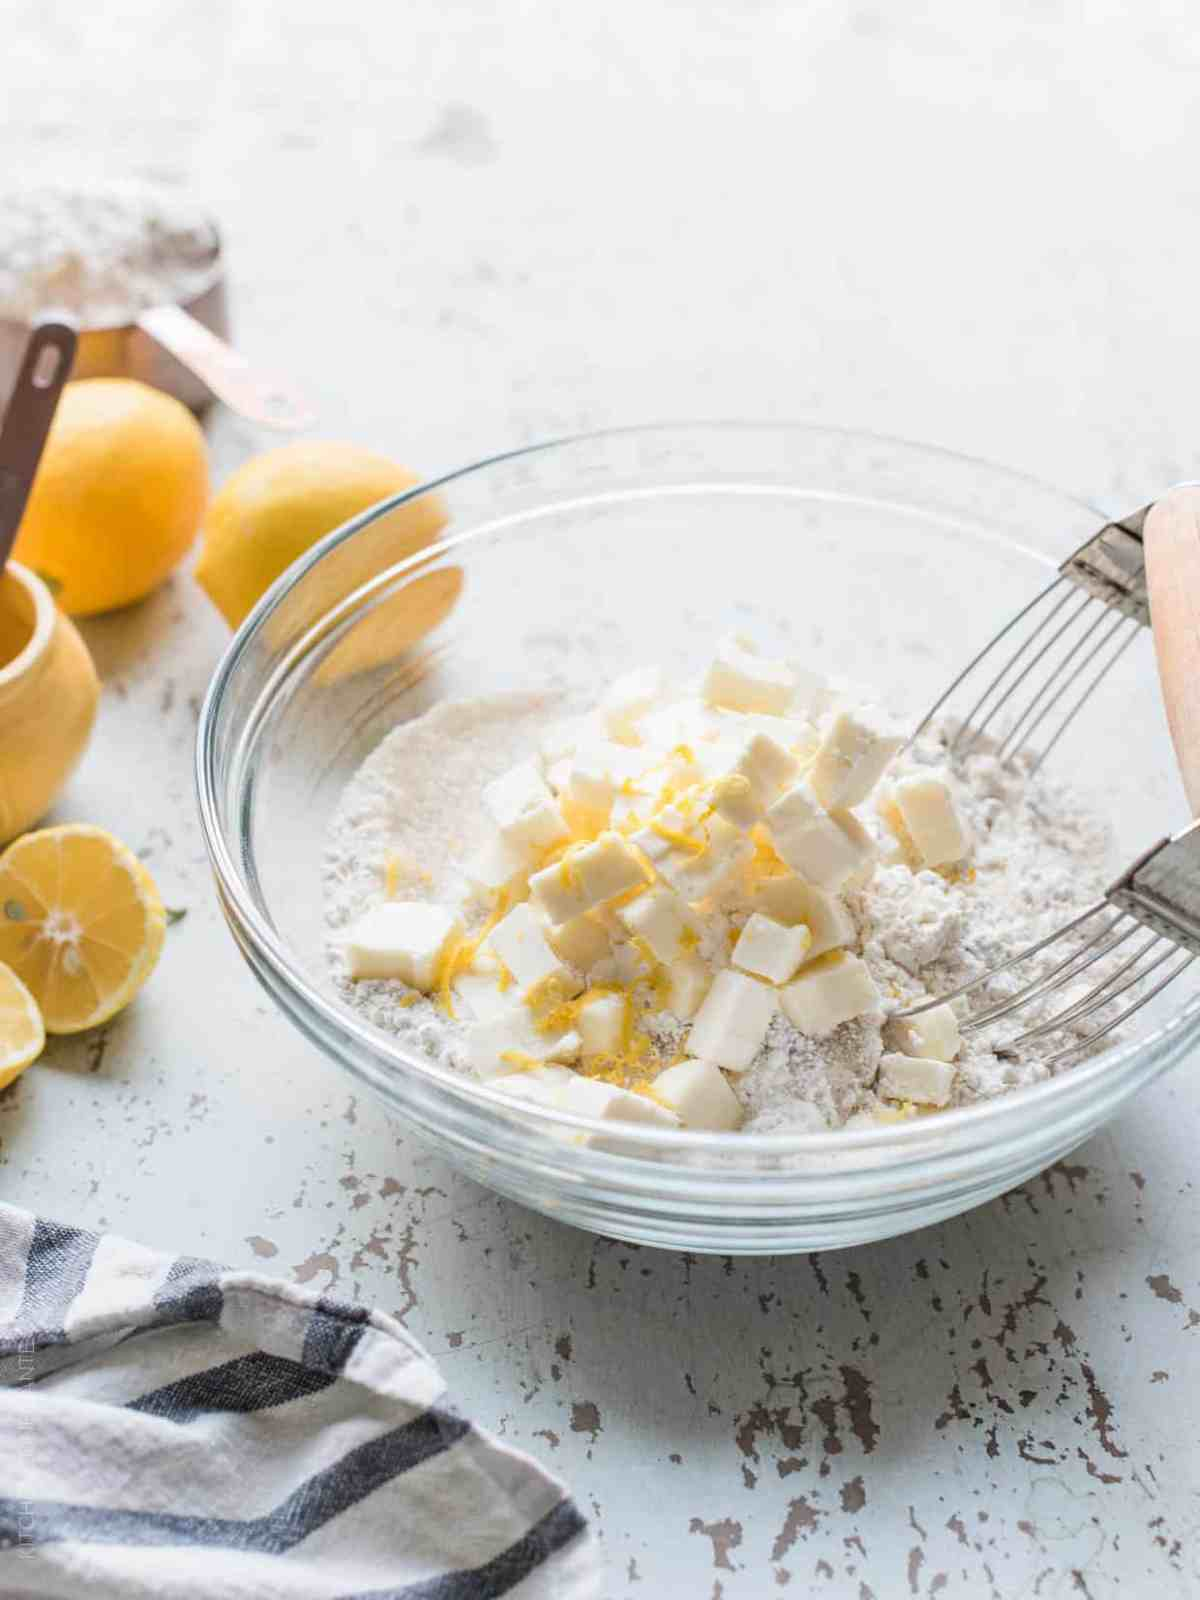 This recipe for Meyer Lemon Ricotta Scones will brighten up any winter morning with its moist, tender crumb and sweet lemon glaze.